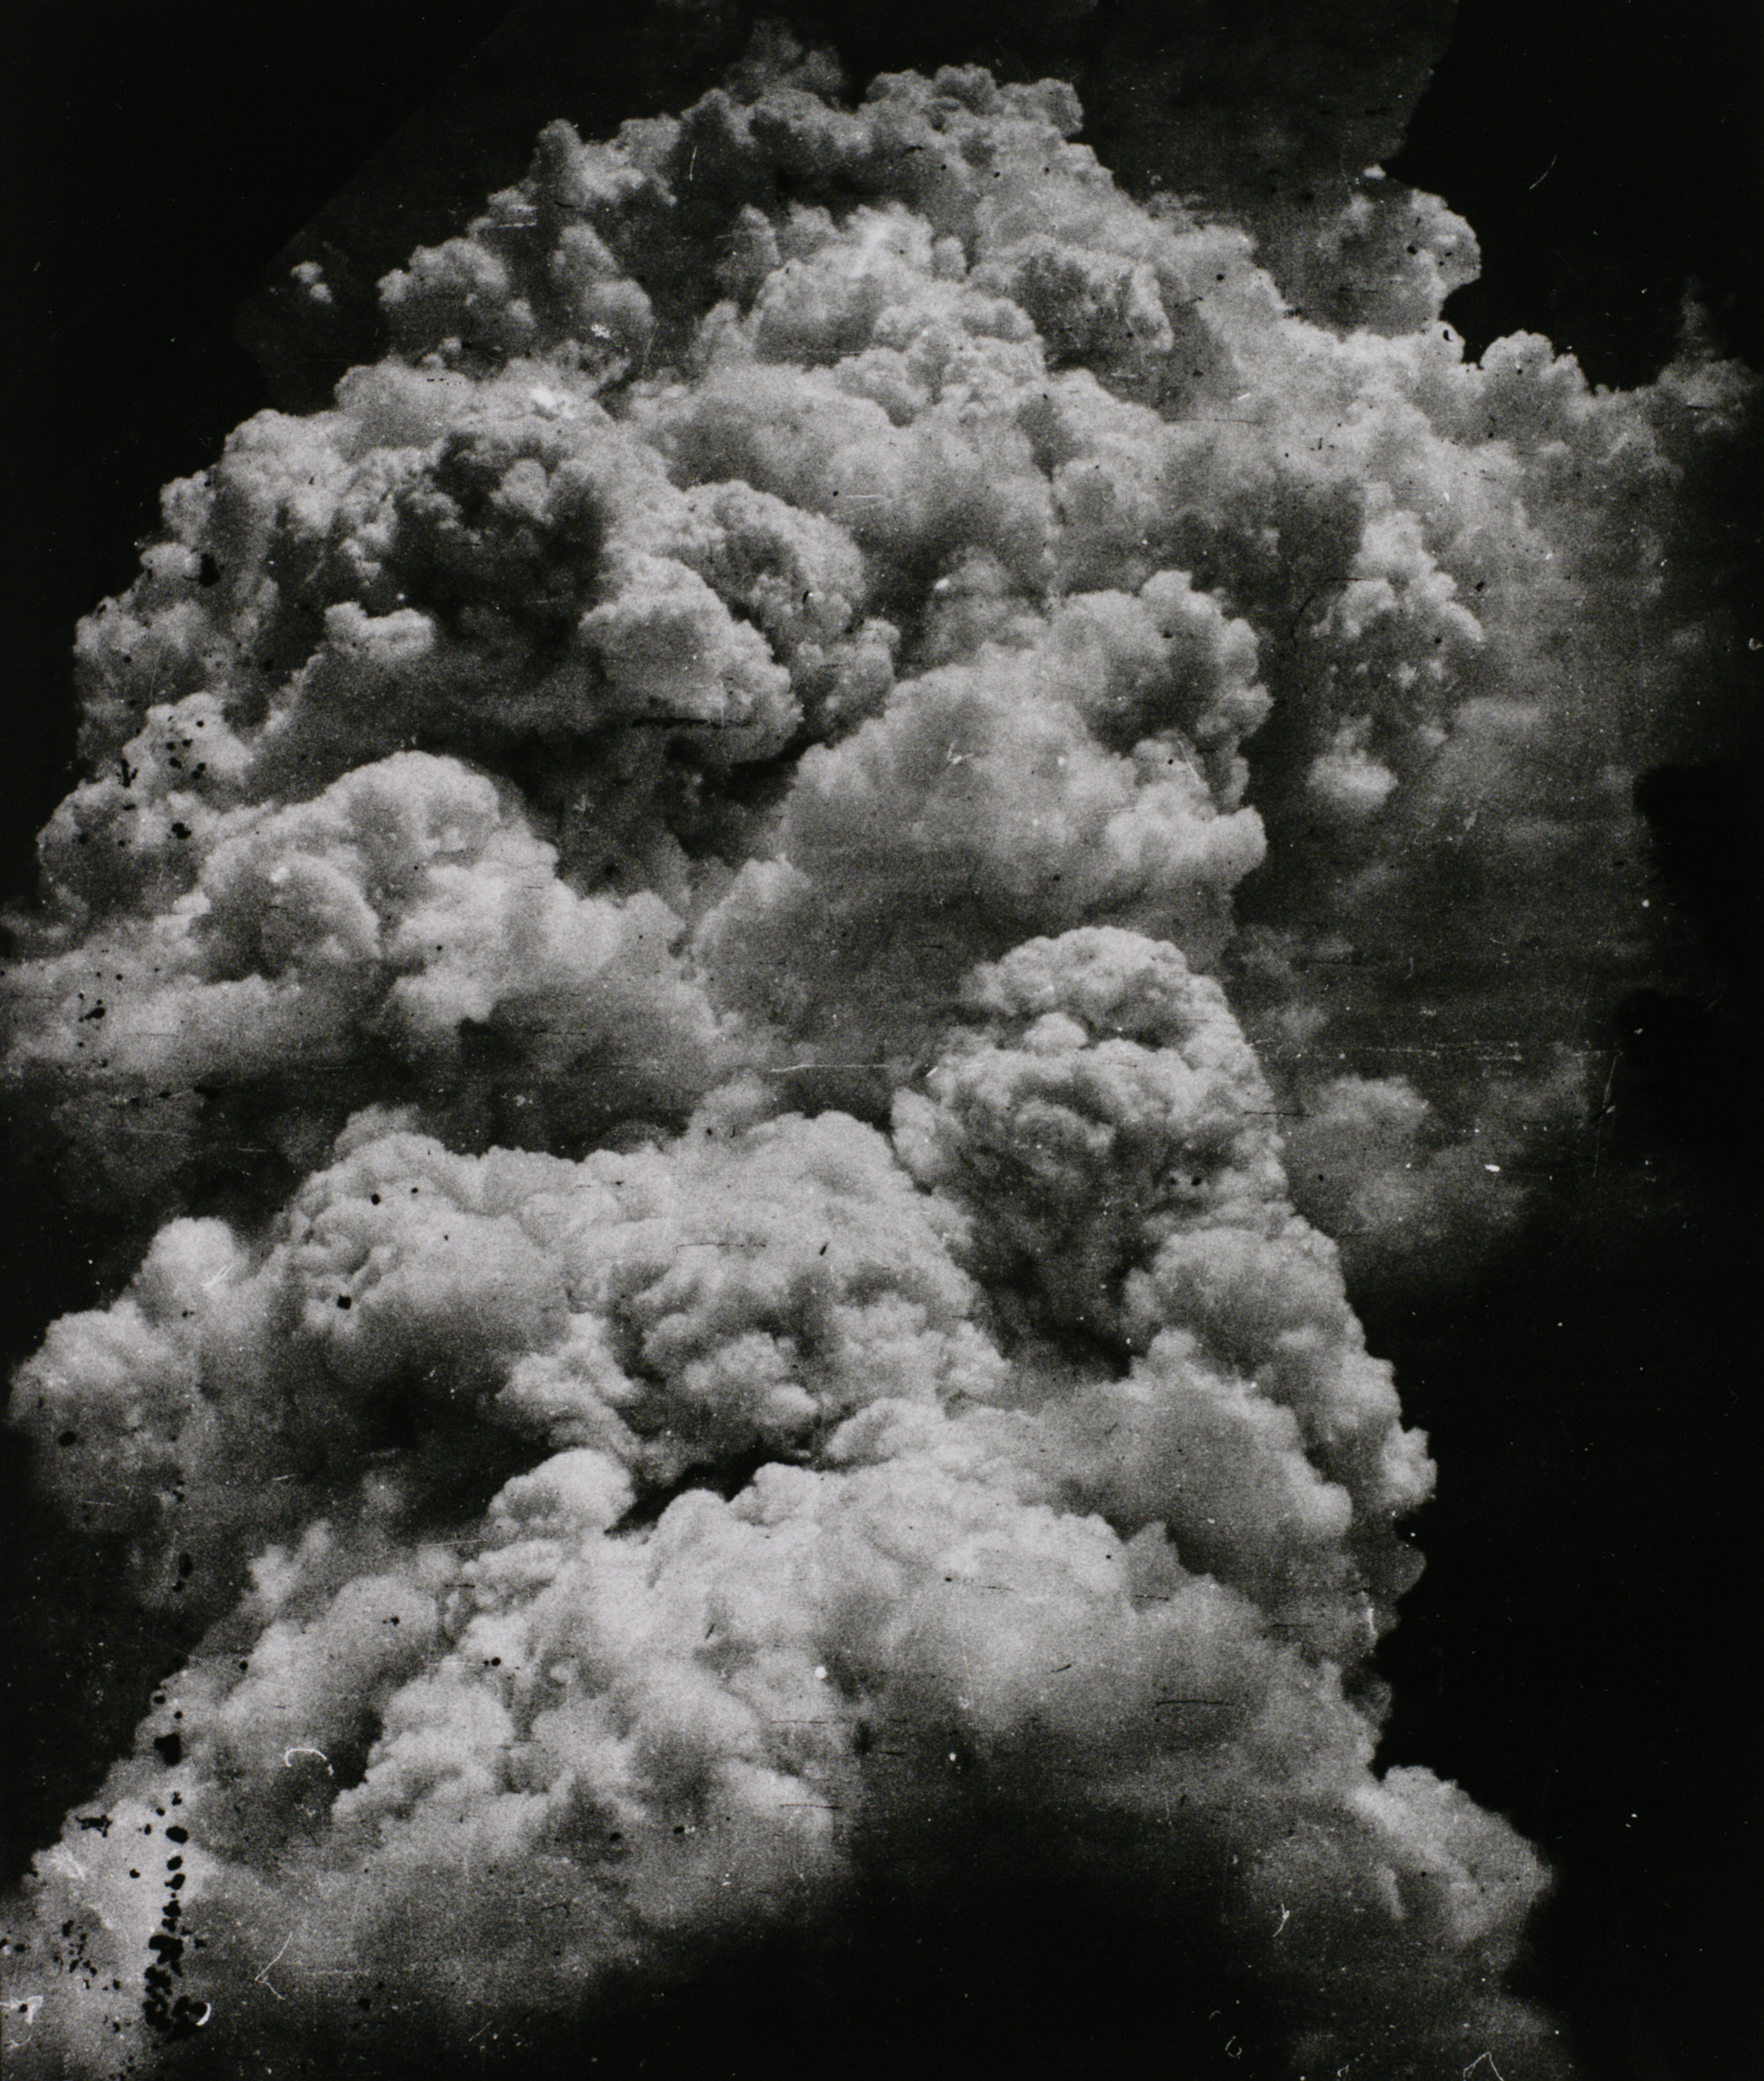 Toshio Fukada The Mushroom Cloud - Less than twenty minutes after the explosion (1) 1945  Tokyo Metropolitan Museum of Photography (Tokyo, Japan)